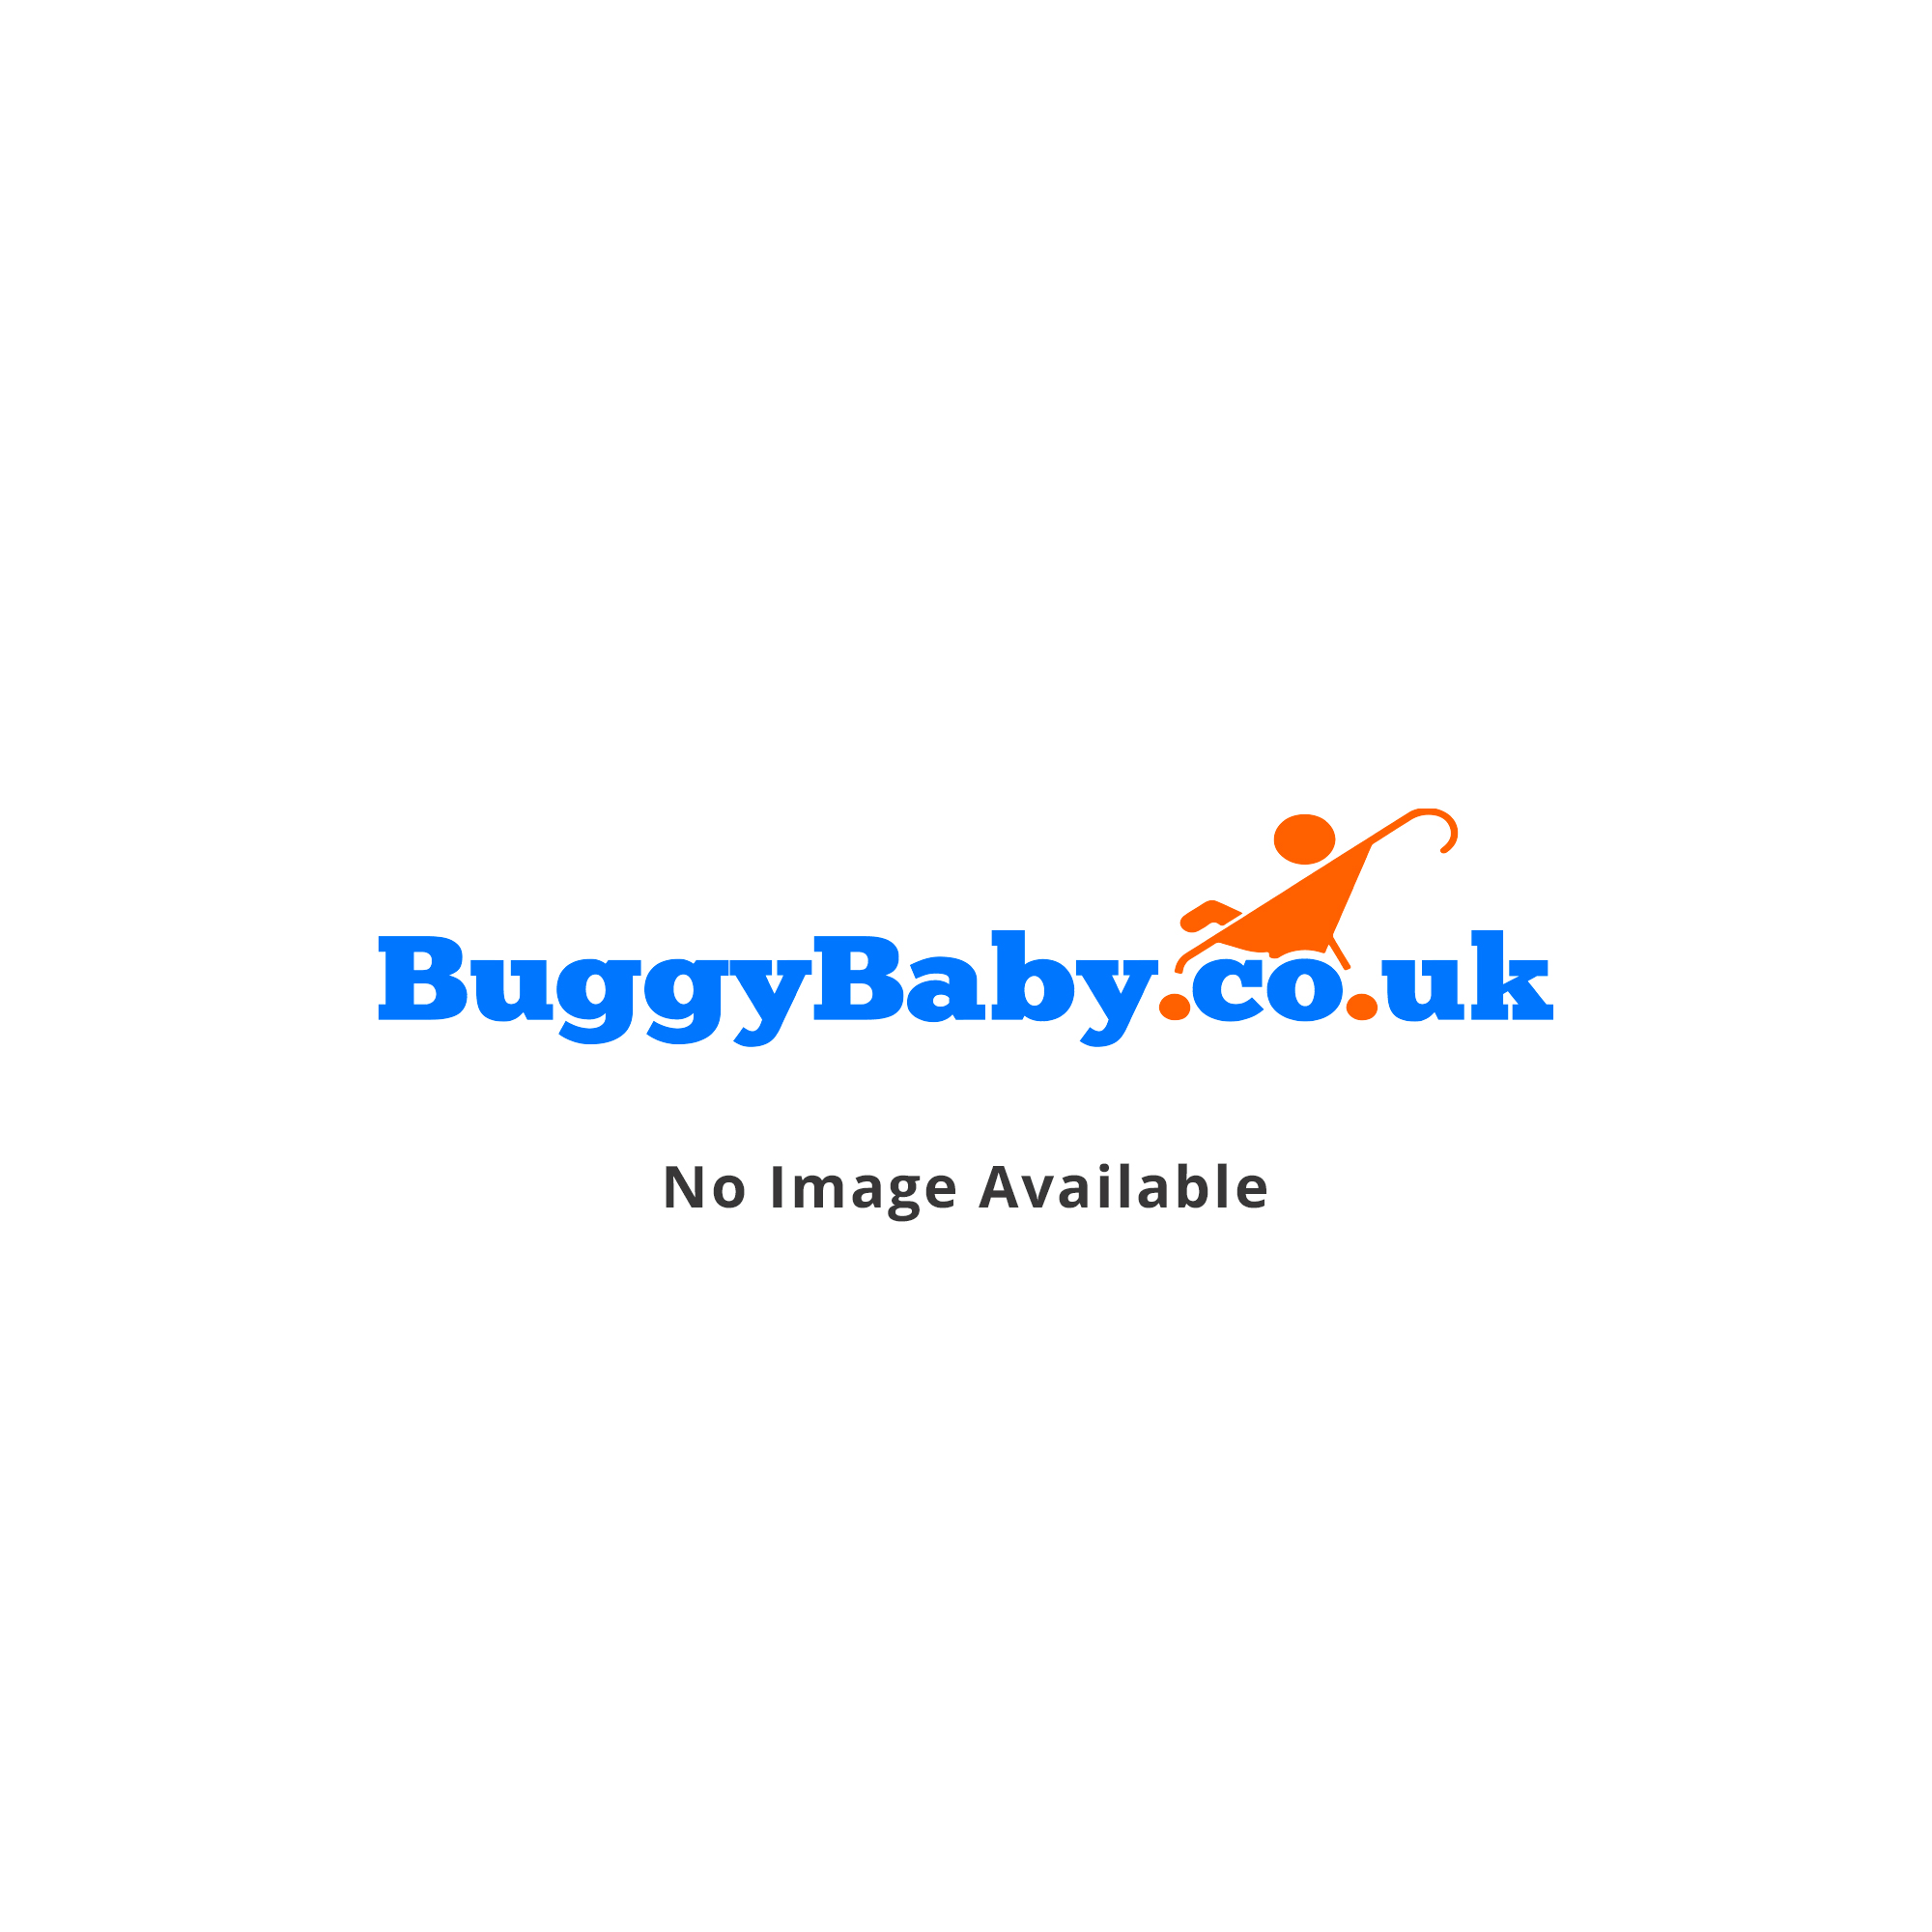 Buy Joie Baby Pushchairs and Infant Car Seats from BuggyBaby.co.uk